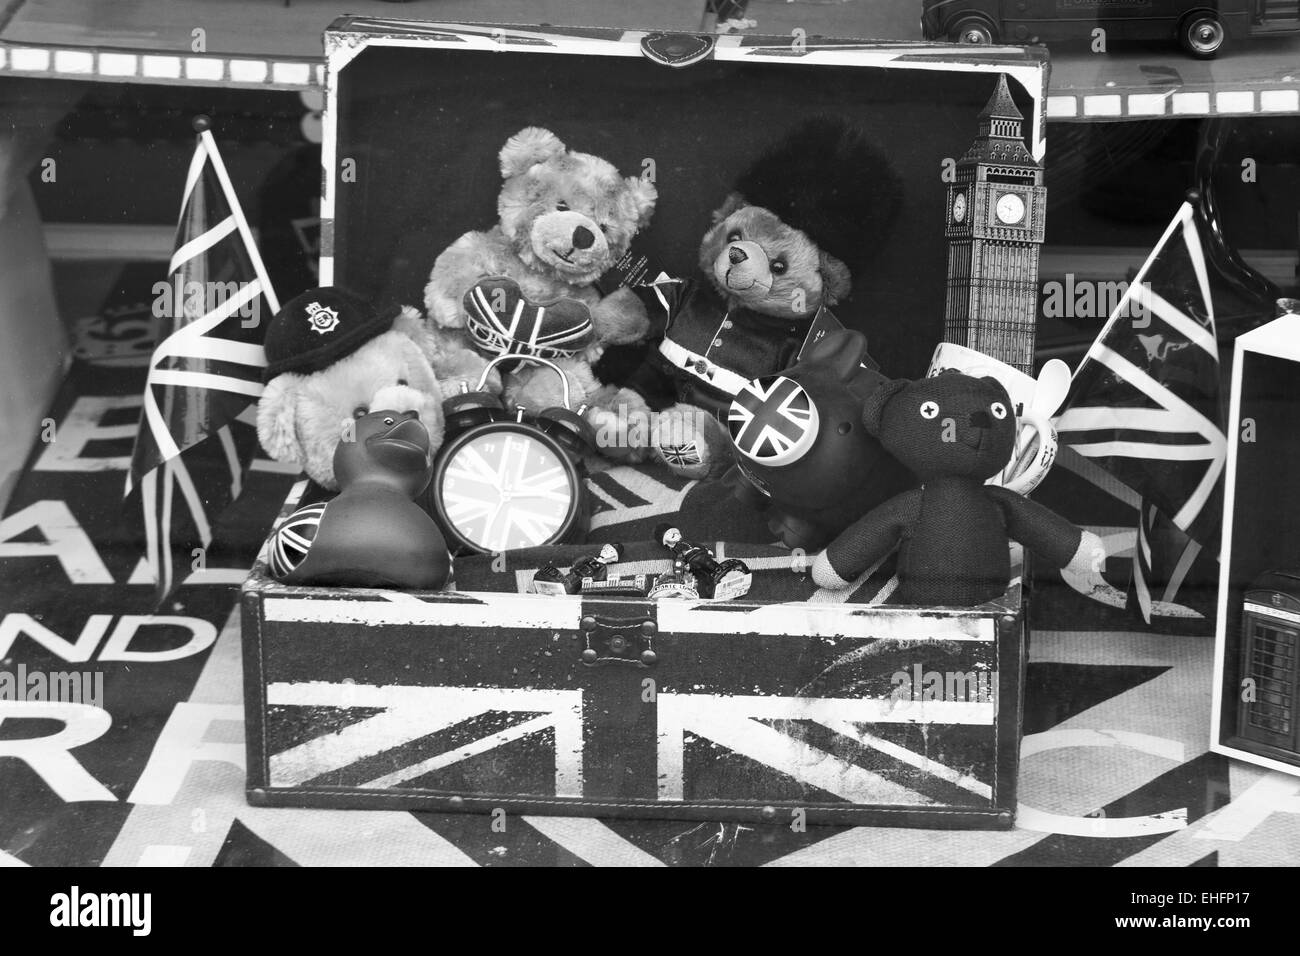 Black and white Toys In A Union Jack Toy Box - Stock Image